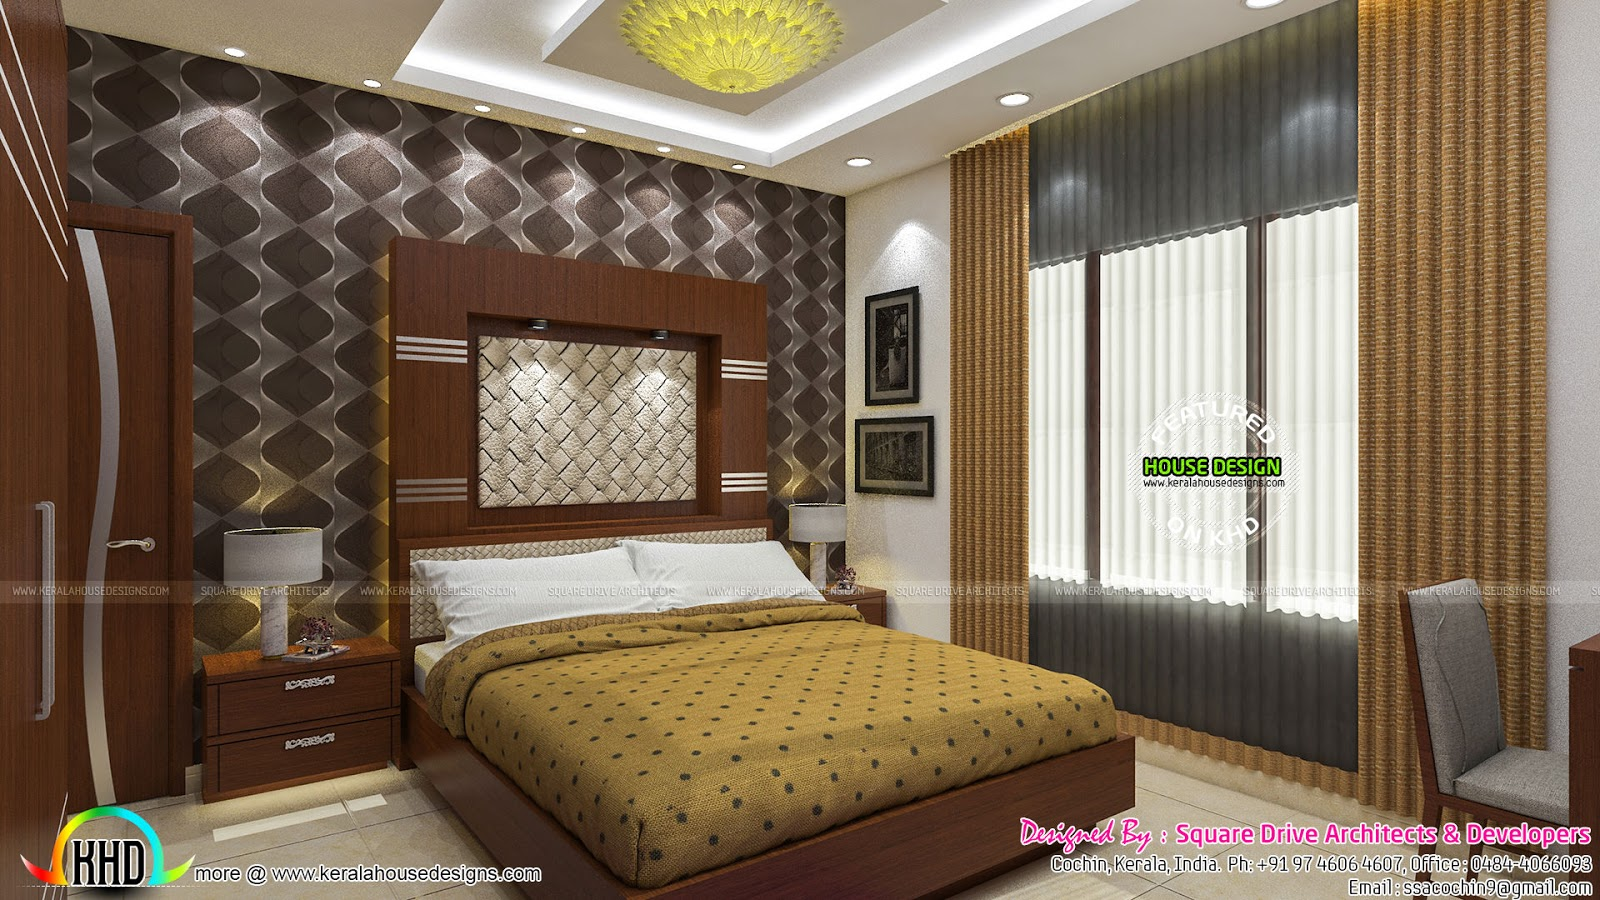 Beautiful Upper Bedroom And Master Bedroom Kerala Home Design And Floor Plans